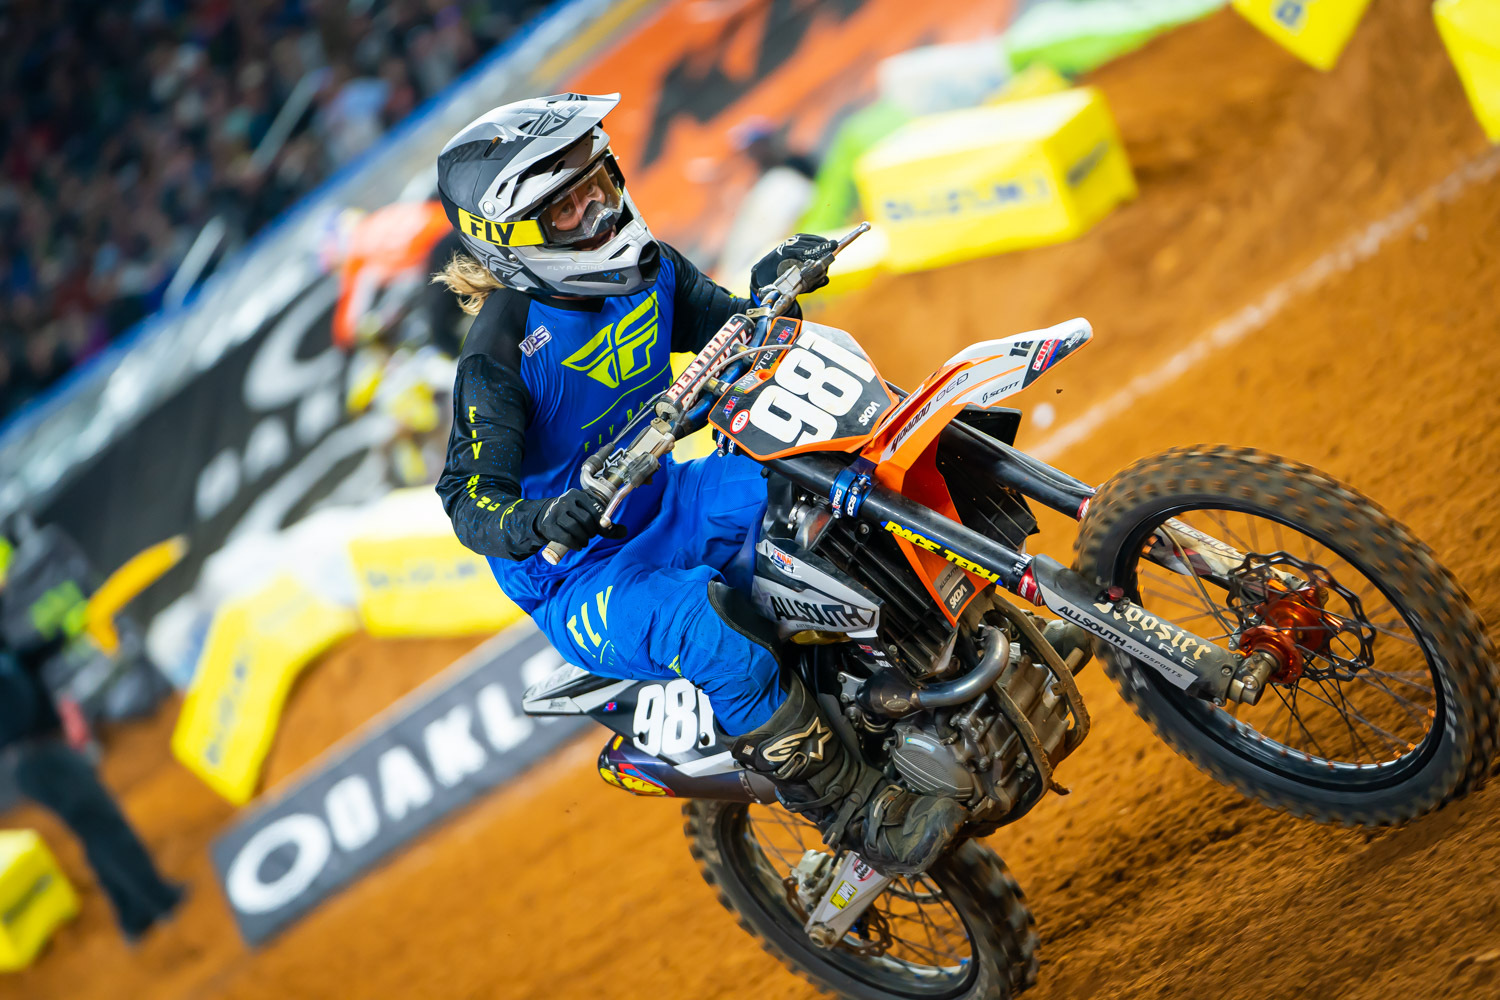 2020-ARLINGTON-SUPERCROSS_KICKSTART_0076